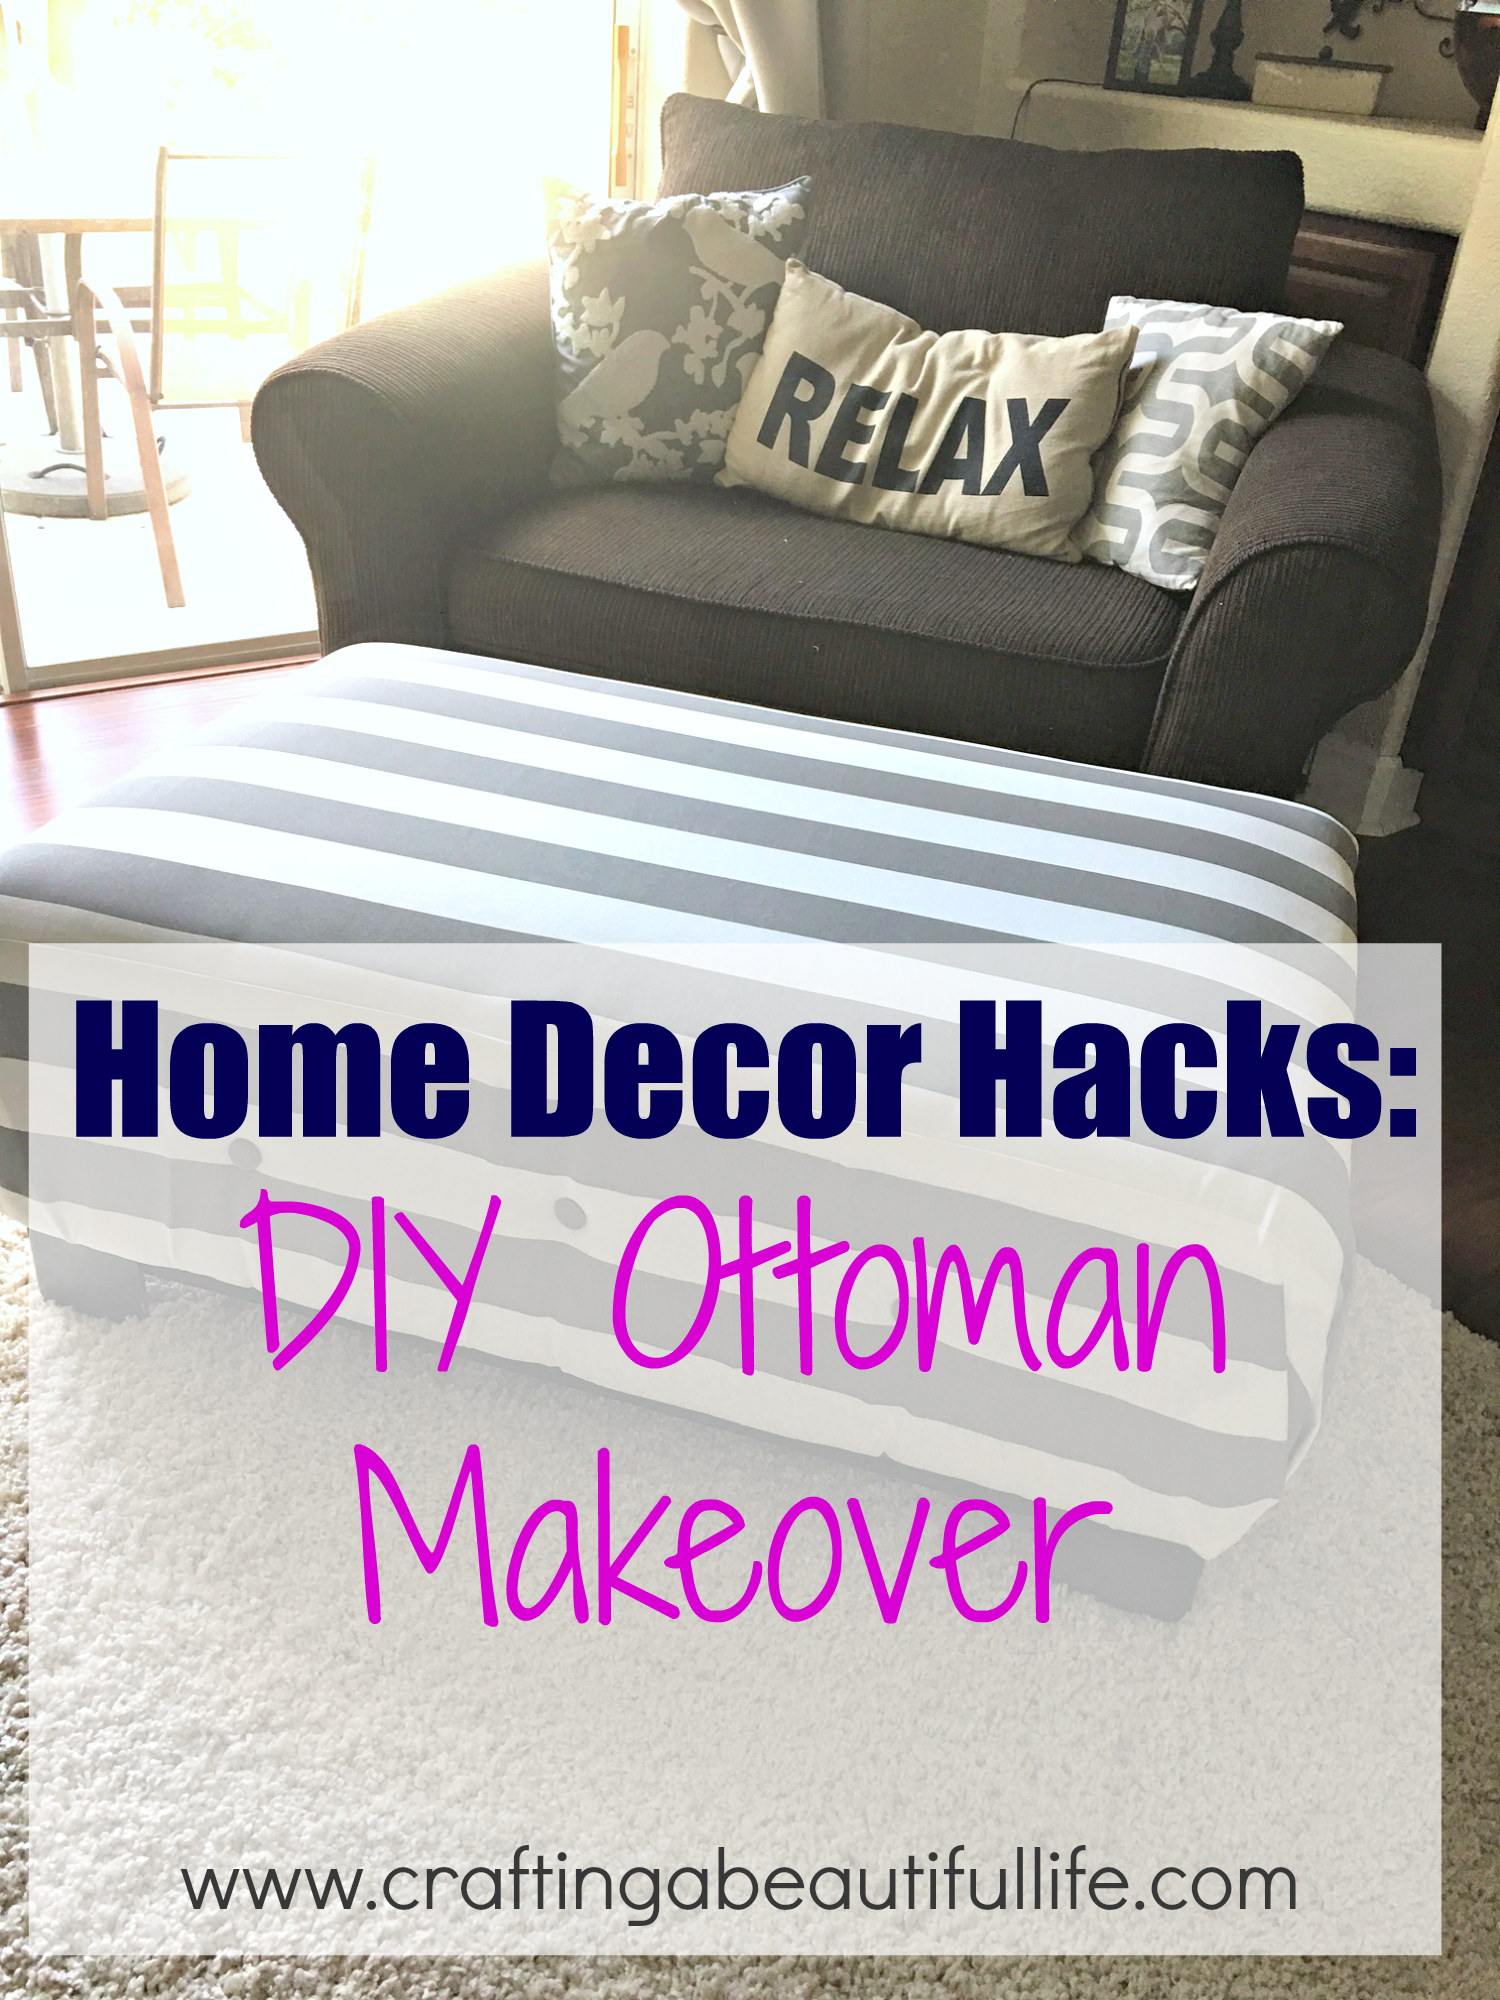 Strange Home Decor Hacks For Recovering An Old Ottoman In Your Home Machost Co Dining Chair Design Ideas Machostcouk